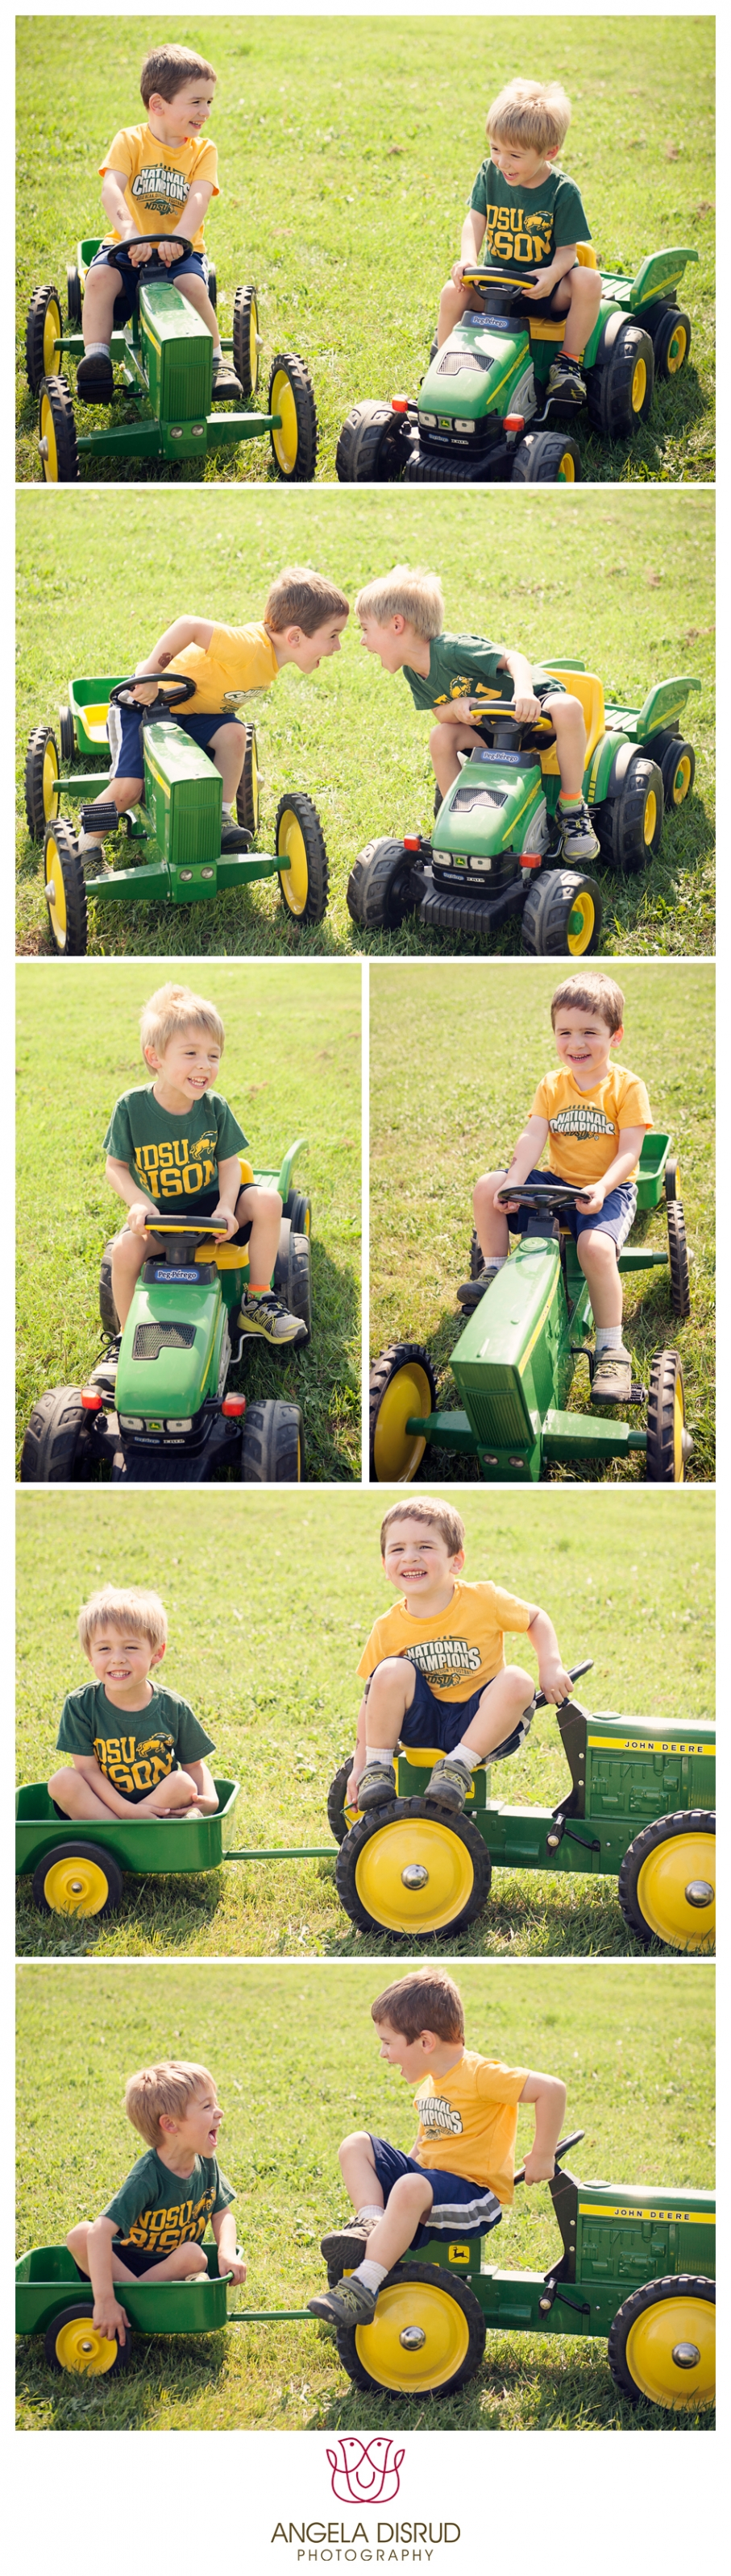 Photos of children with John Deere toys and tractors